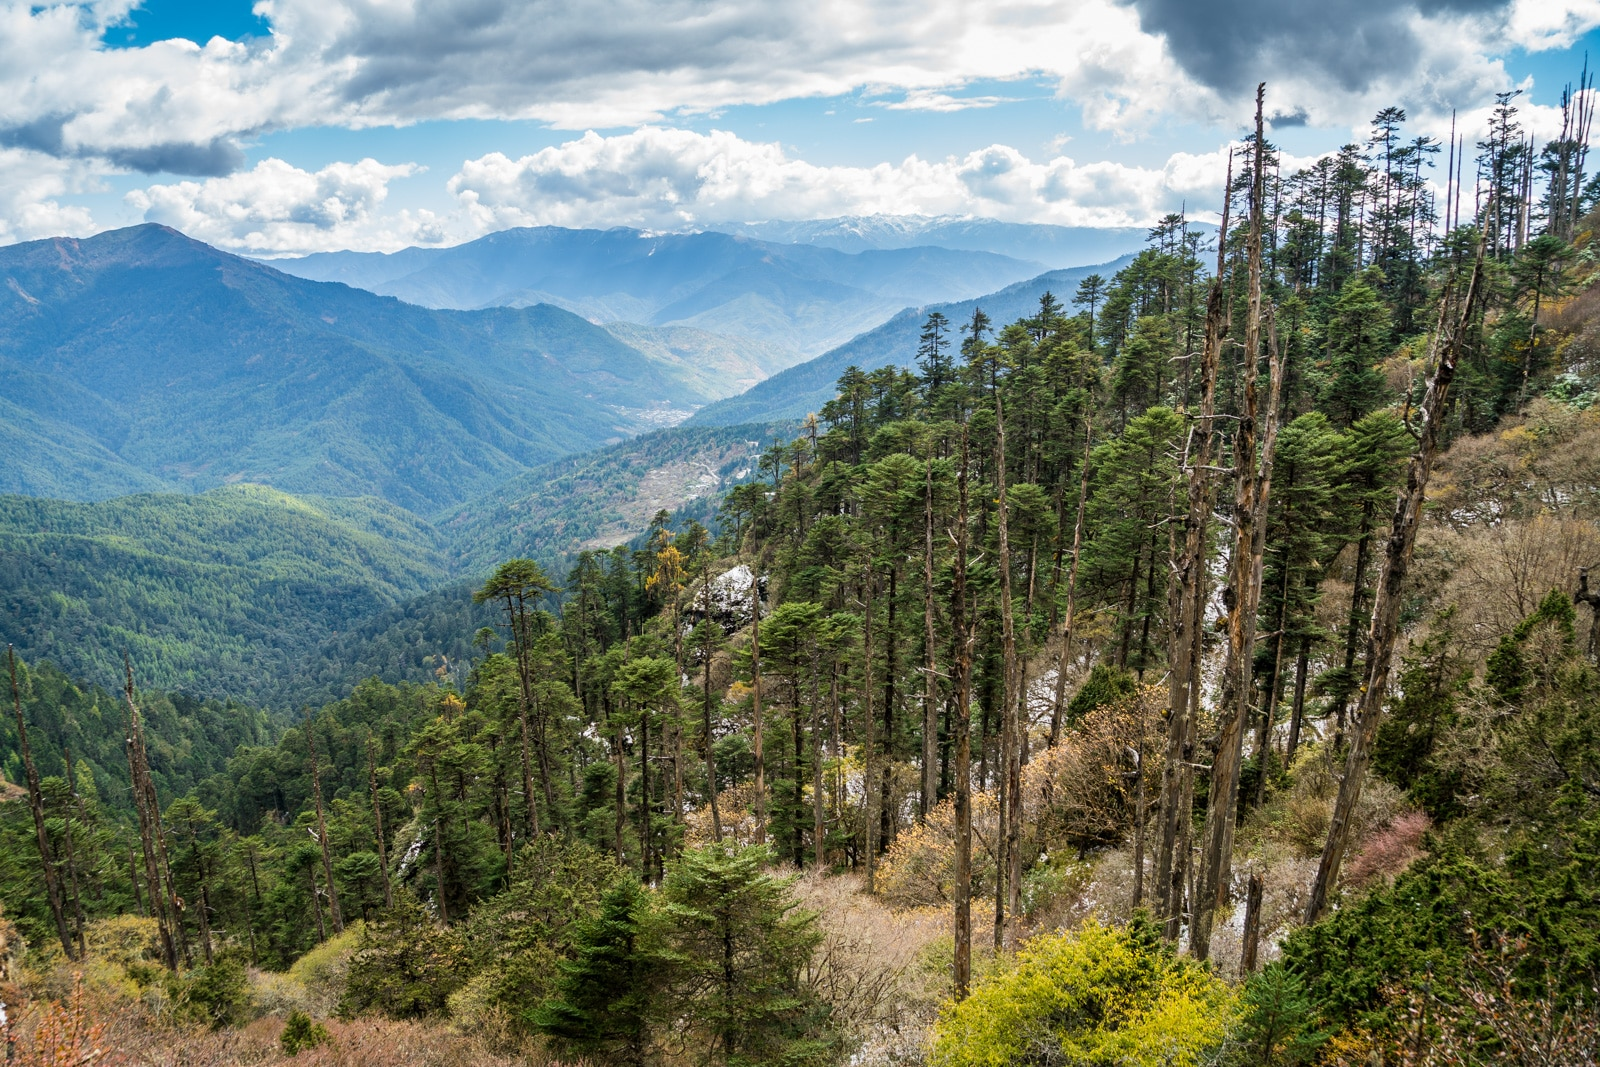 Photos of Bhutan - Trees along the Druk Path - Lost With Purpose travel blog